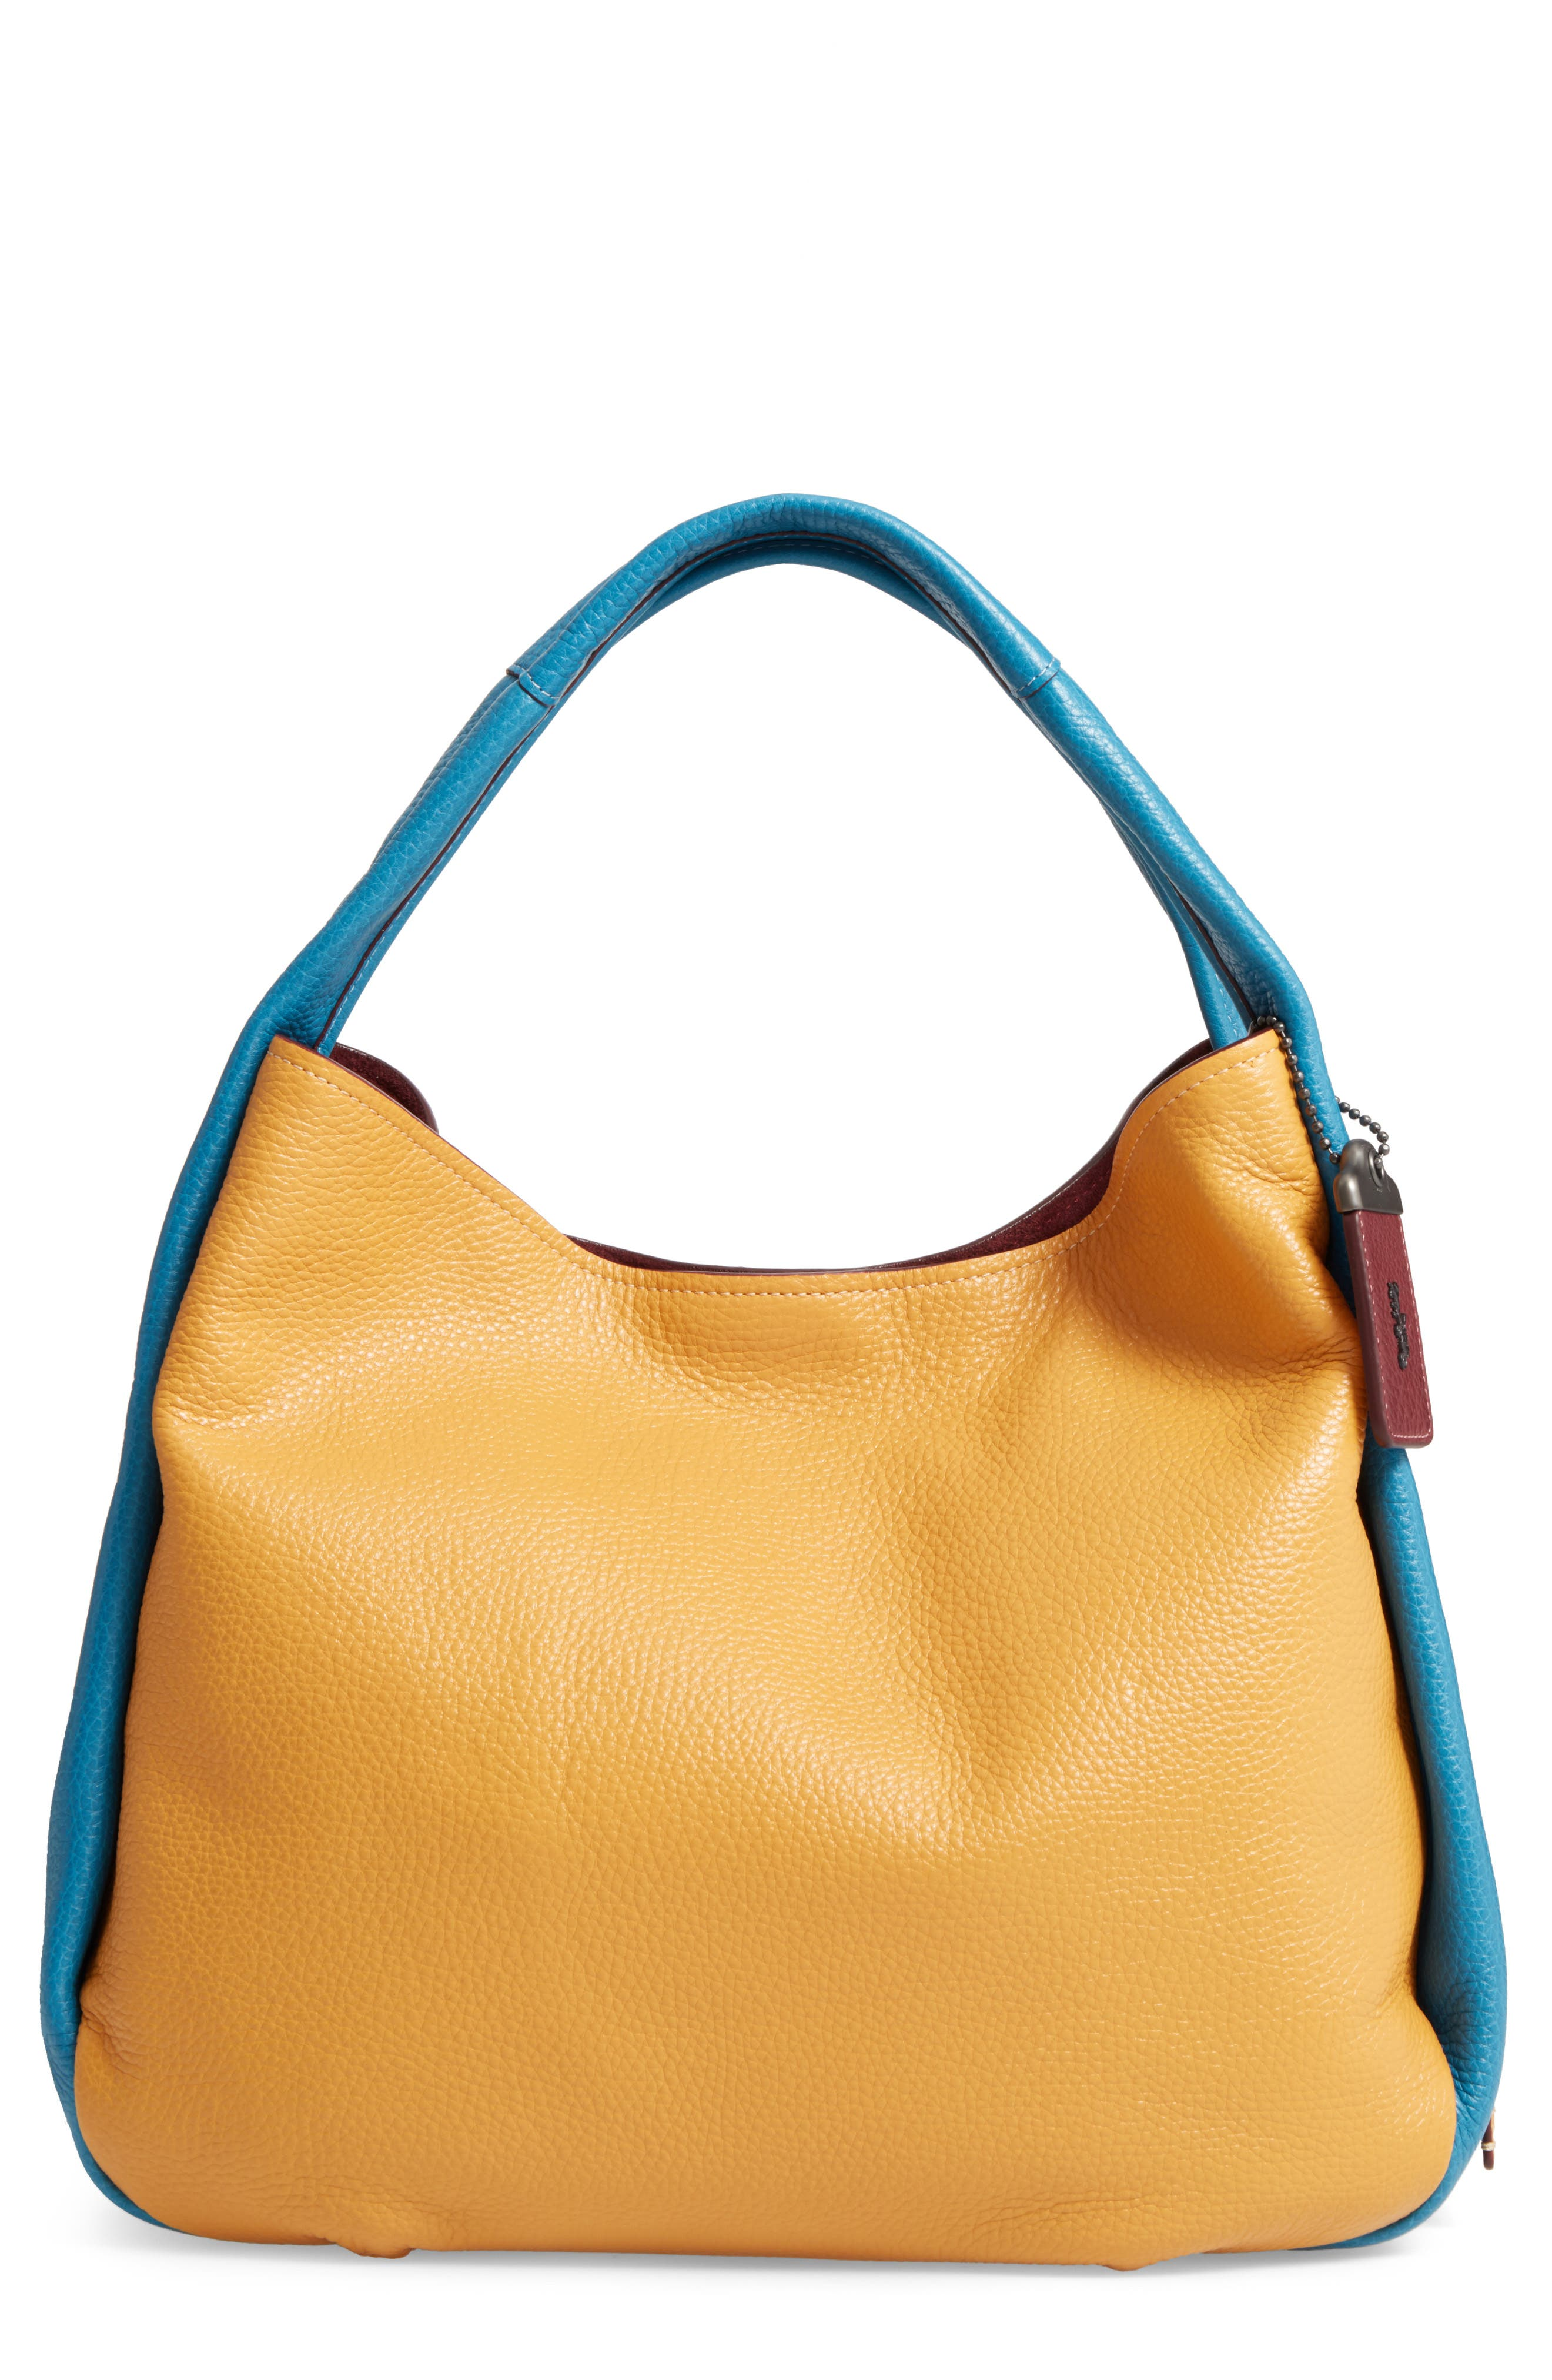 Colorblock Bandit Leather Hobo Bag,                             Main thumbnail 1, color,                             Goldenrod Multi